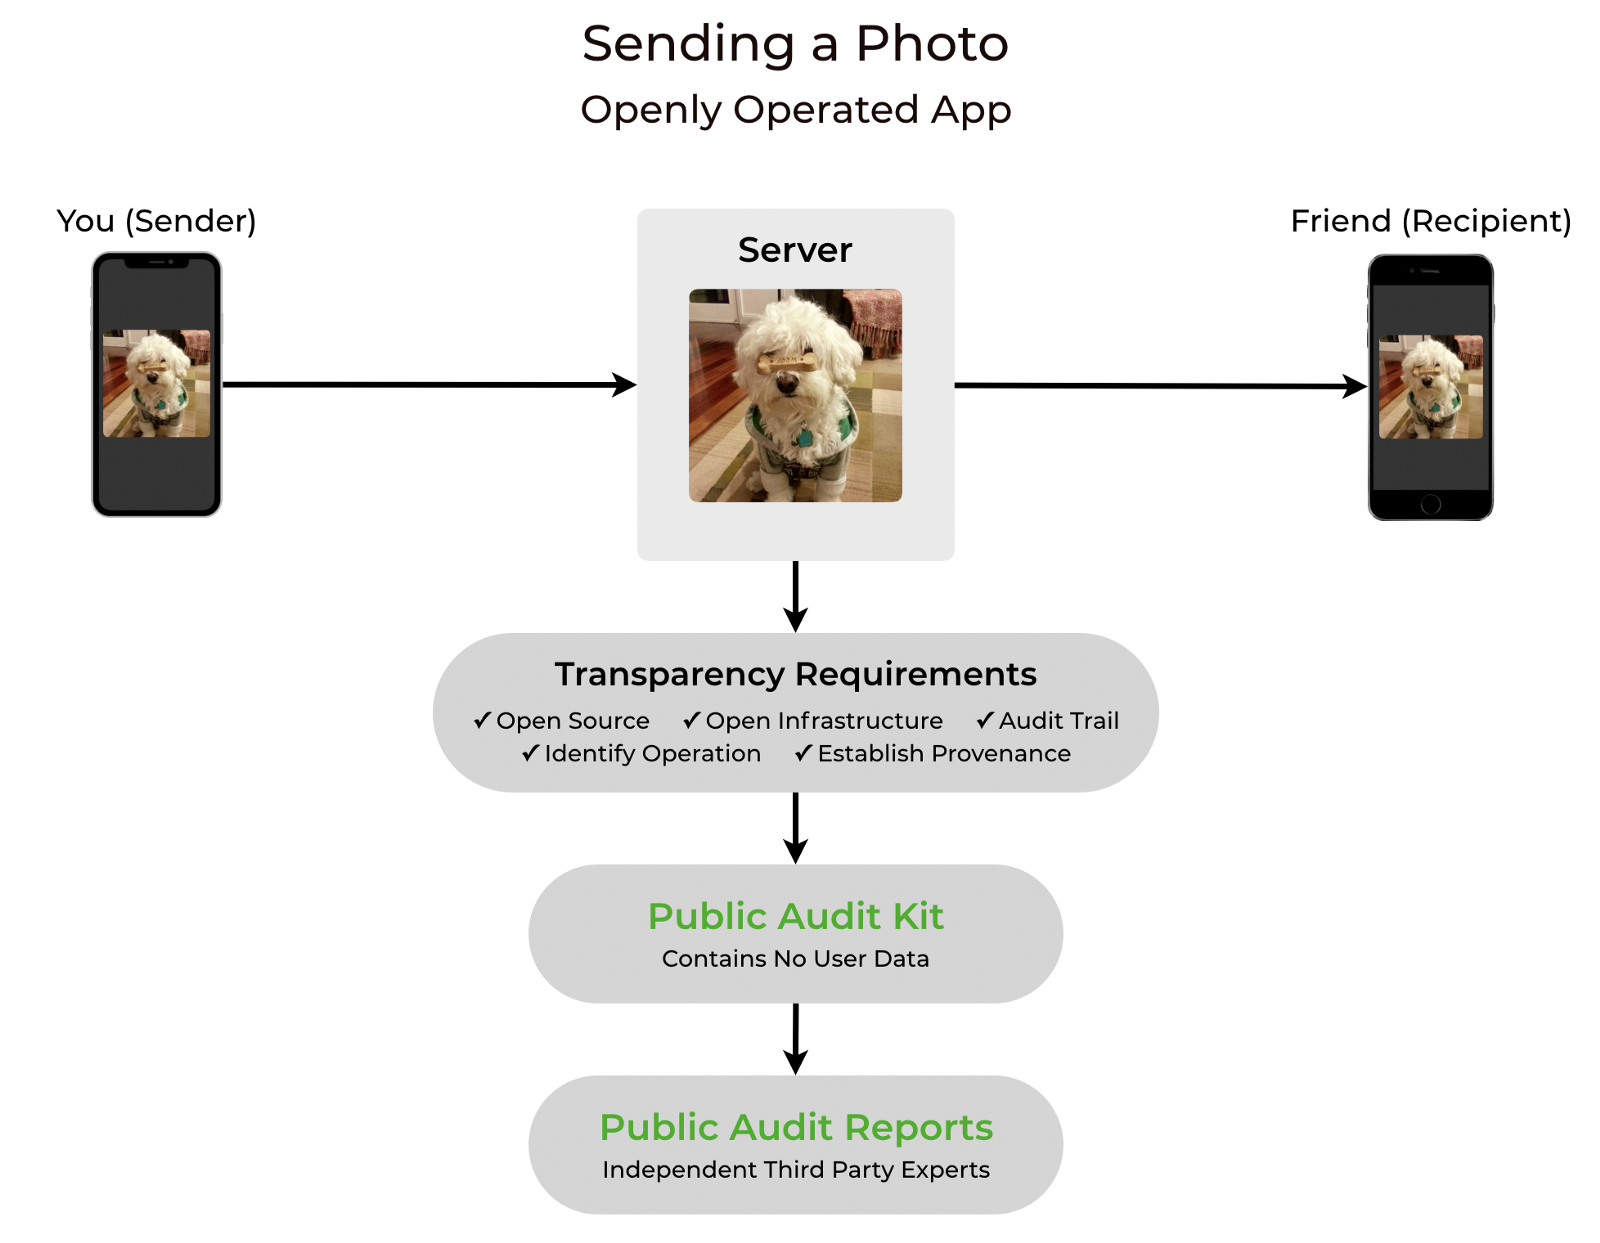 A photo is sent from a Sender device to a server, then to a Recipient device. The server meets five Openly Operated Transparency Requirements, which produce Public Audit Kit and Public Reports.